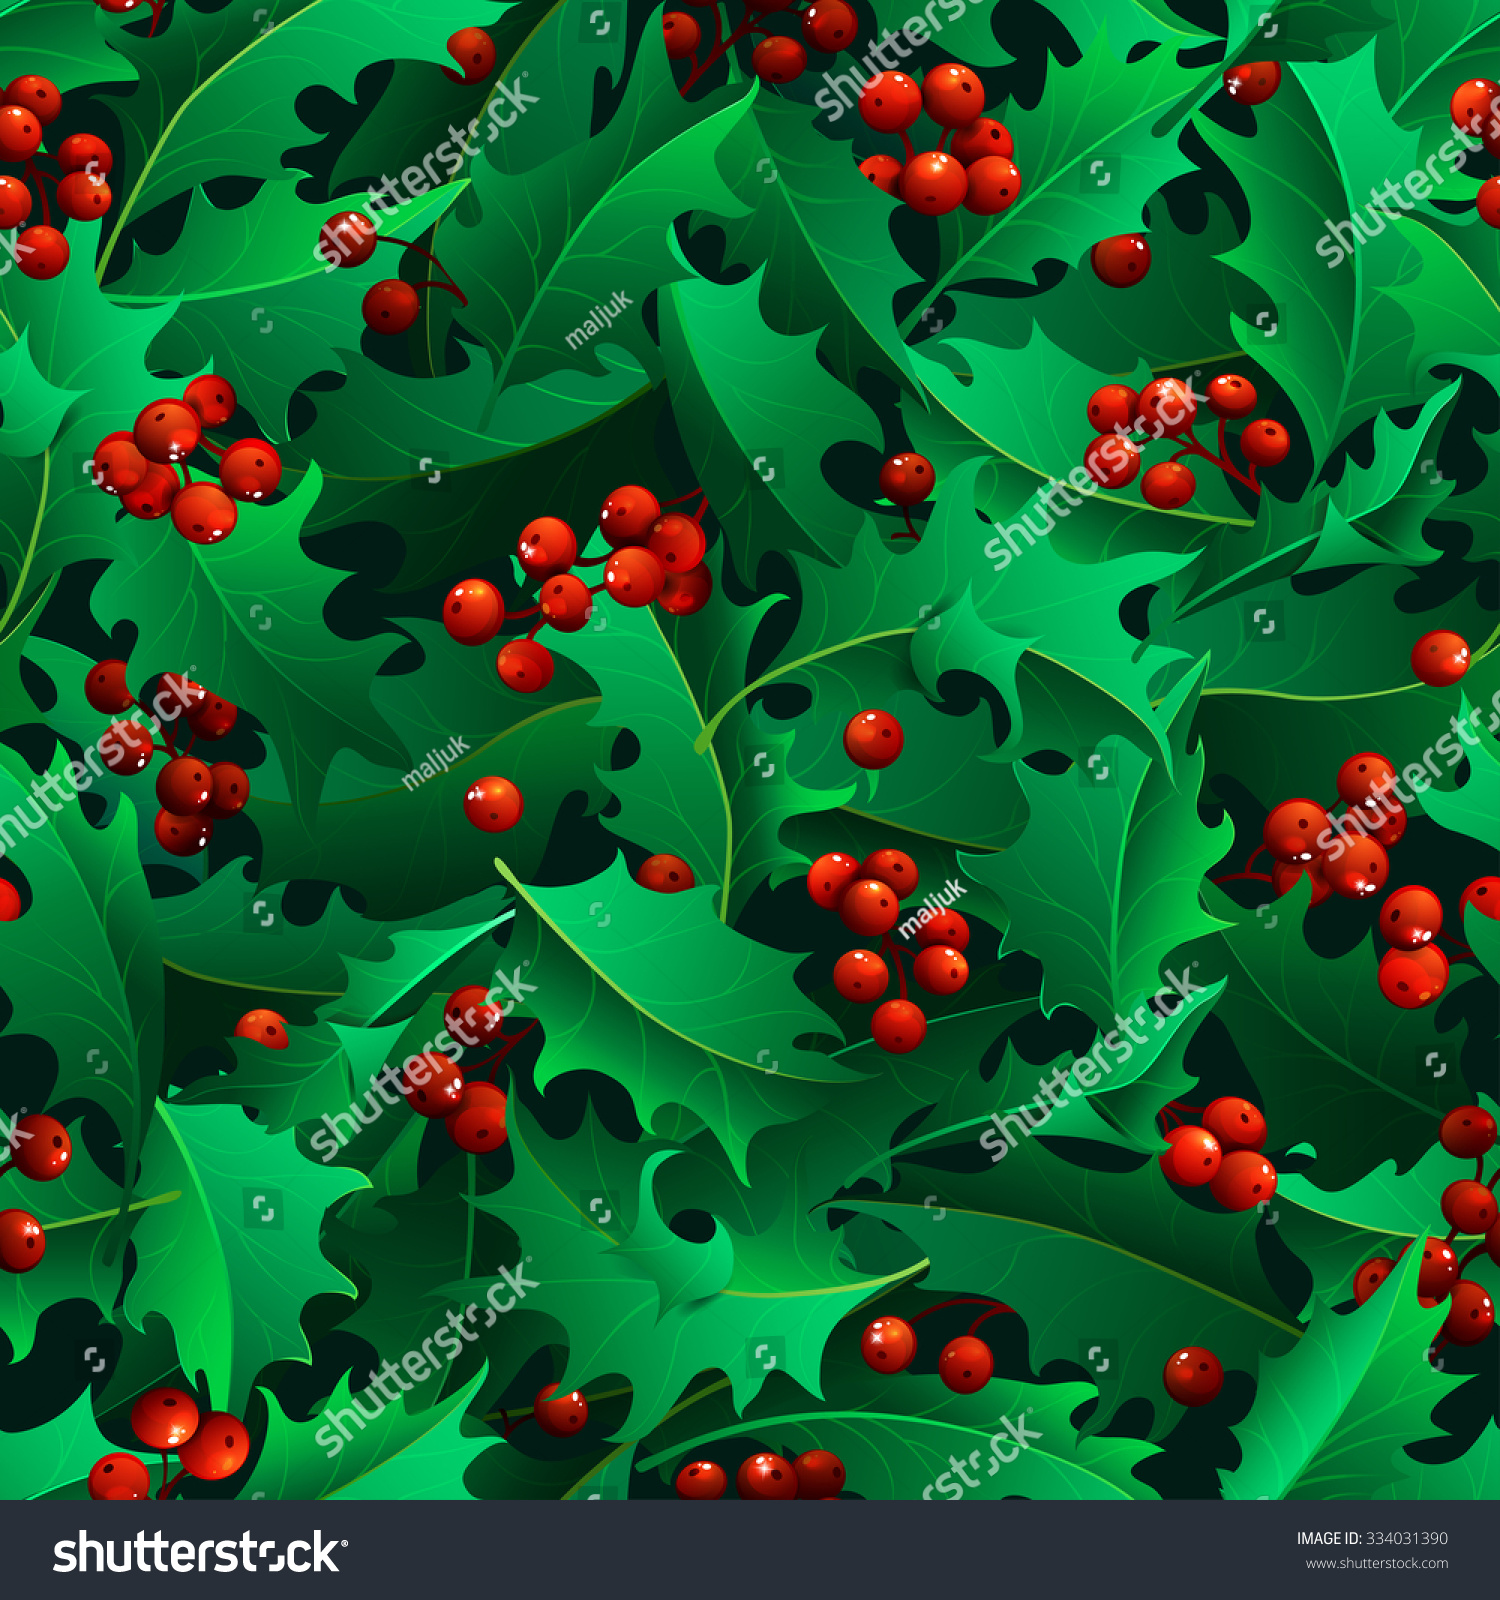 Why is holly a traditional christmas decoration - Christmas Holly Berries Seamless Pattern Traditional Christmas Decoration Boundless Background Can Be Used For